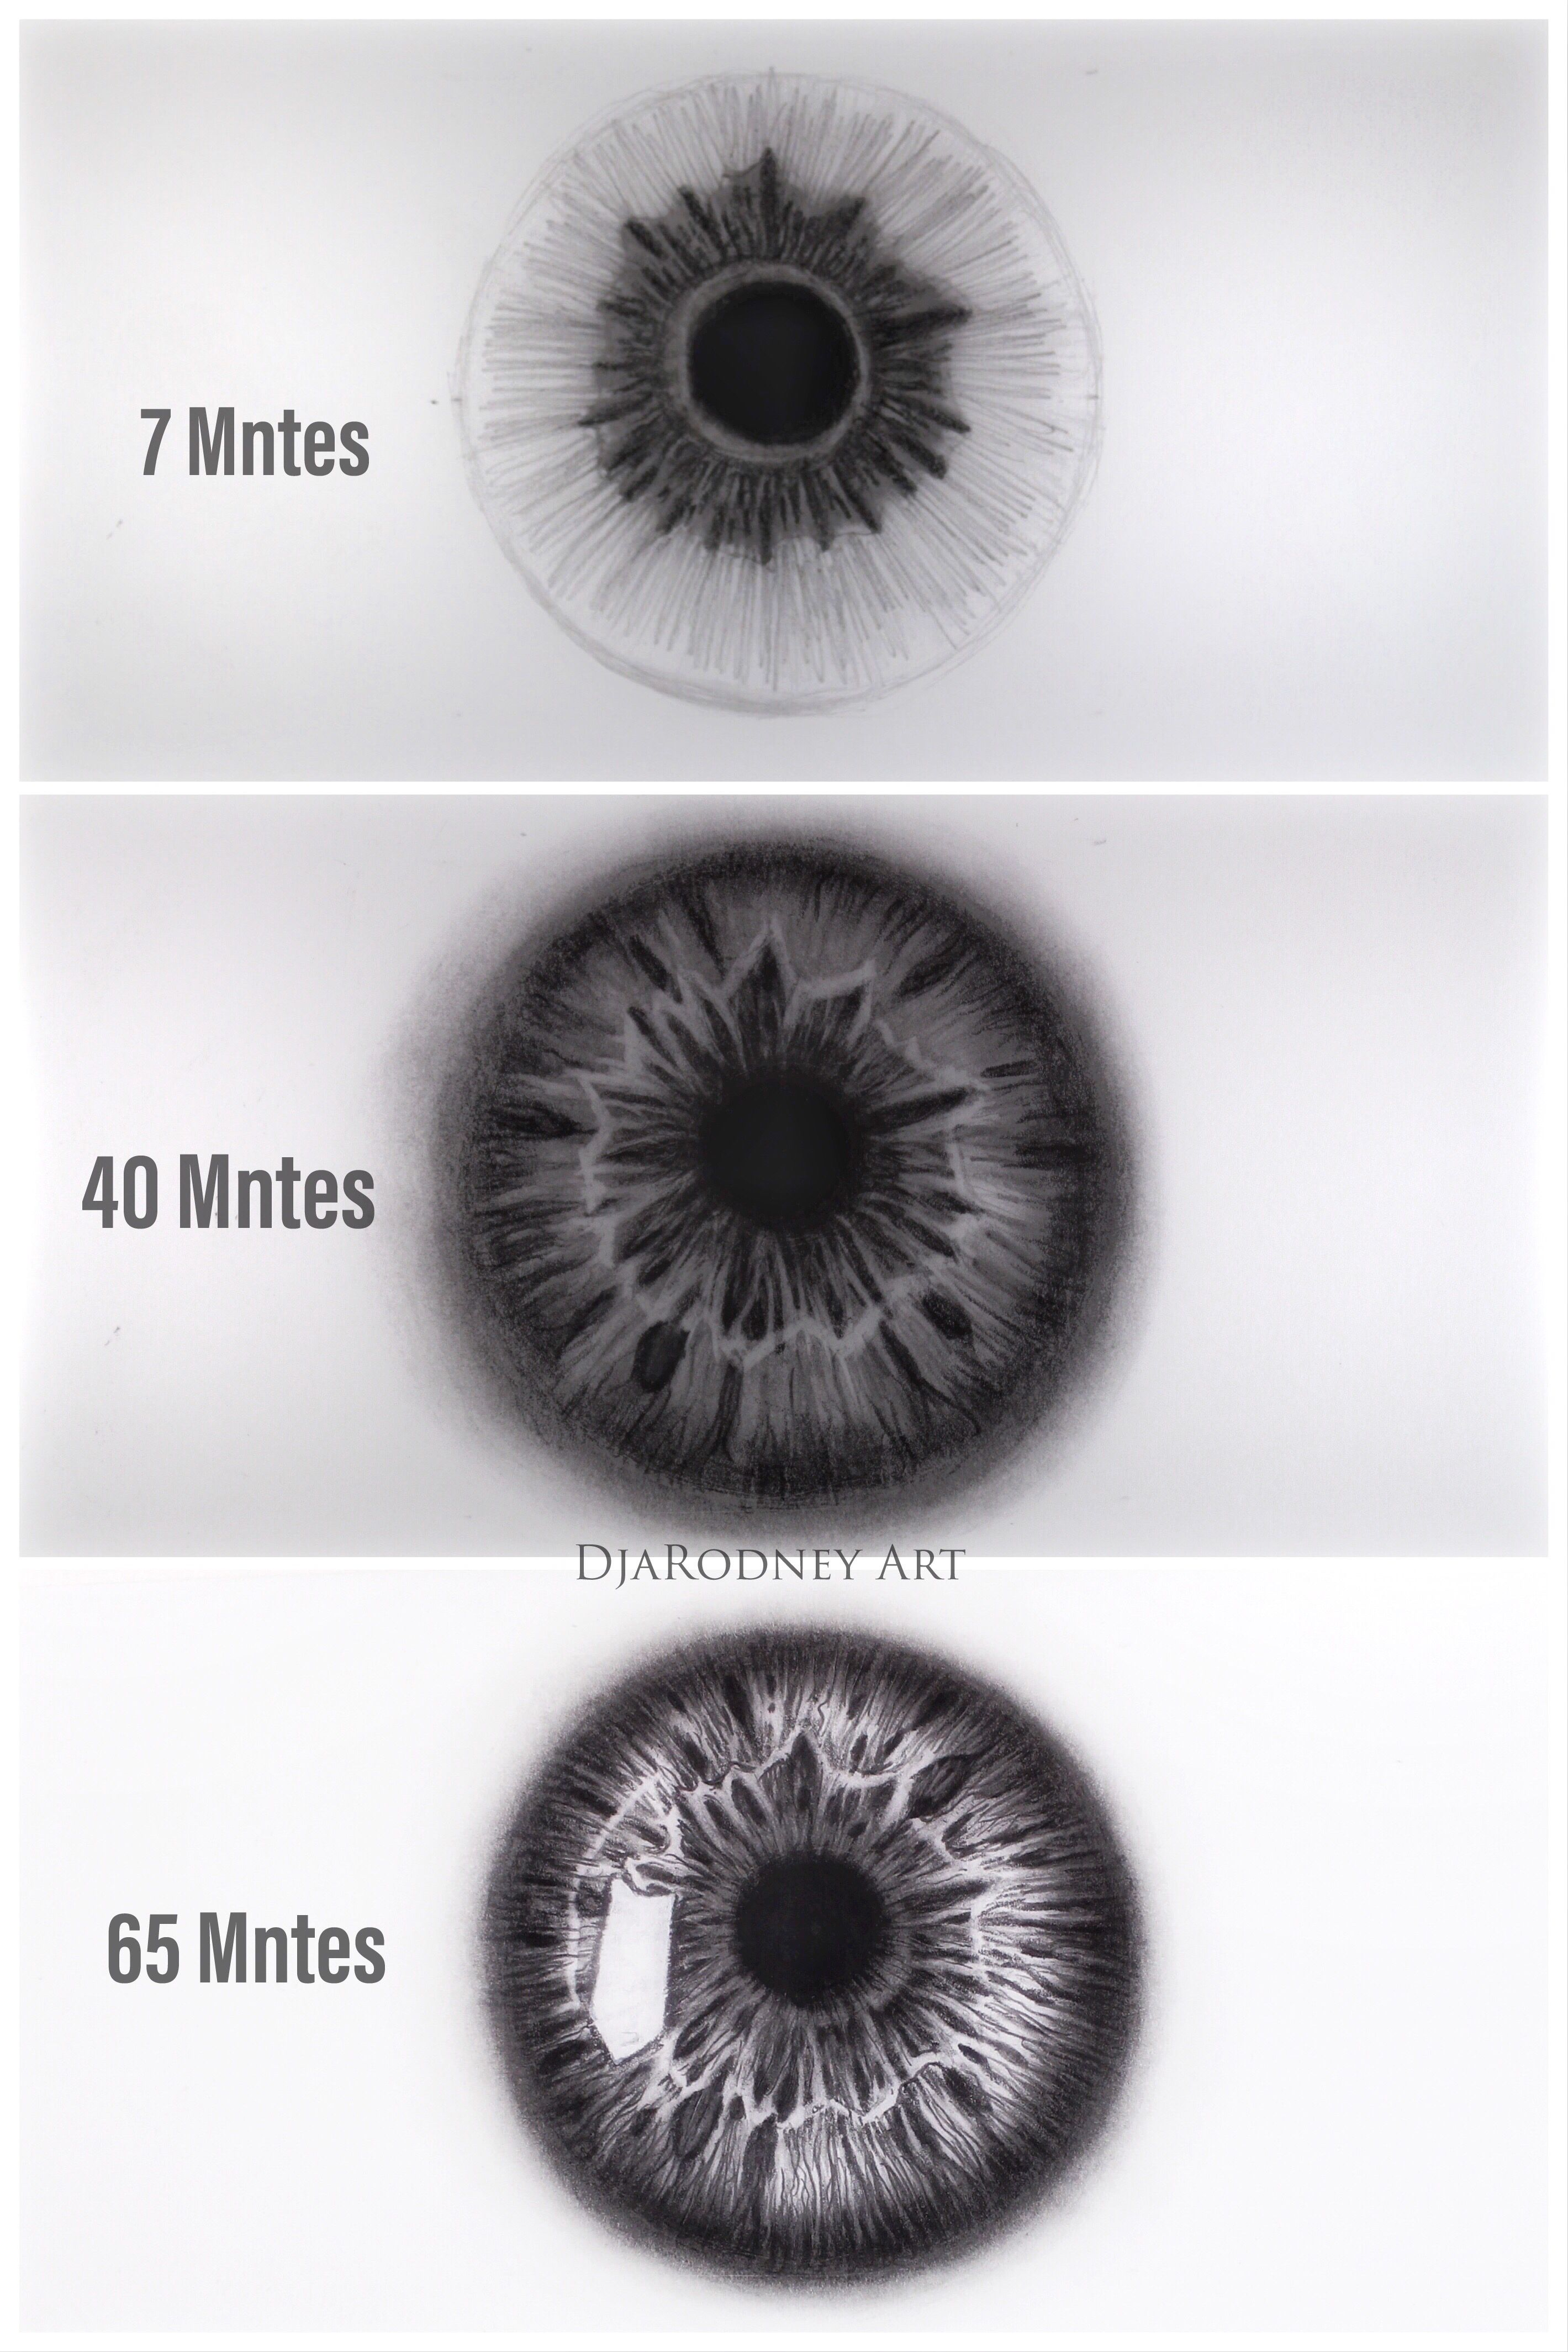 Watch The Full Video Click On The Link How To Draw Eyeball Step